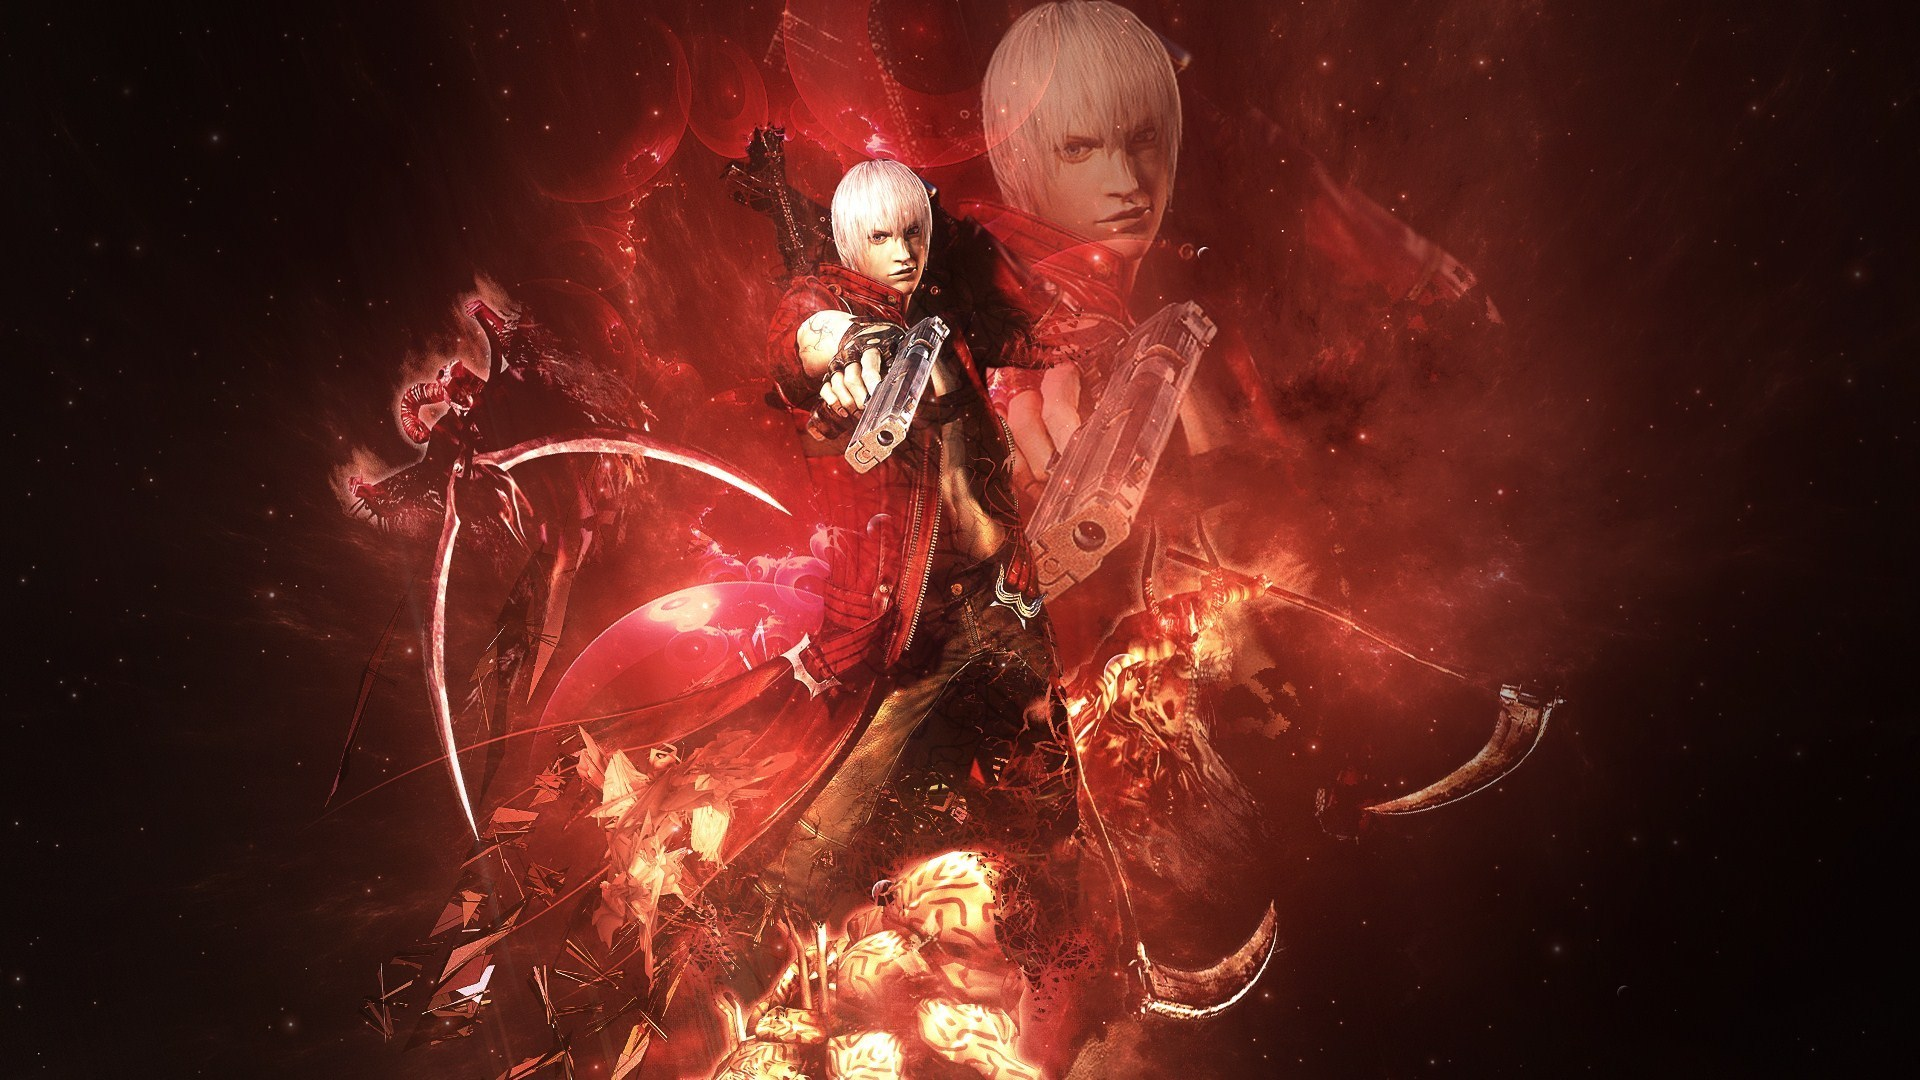 Wallpaper Of Devil May Cry 3 Demon Dante Pistolety Background